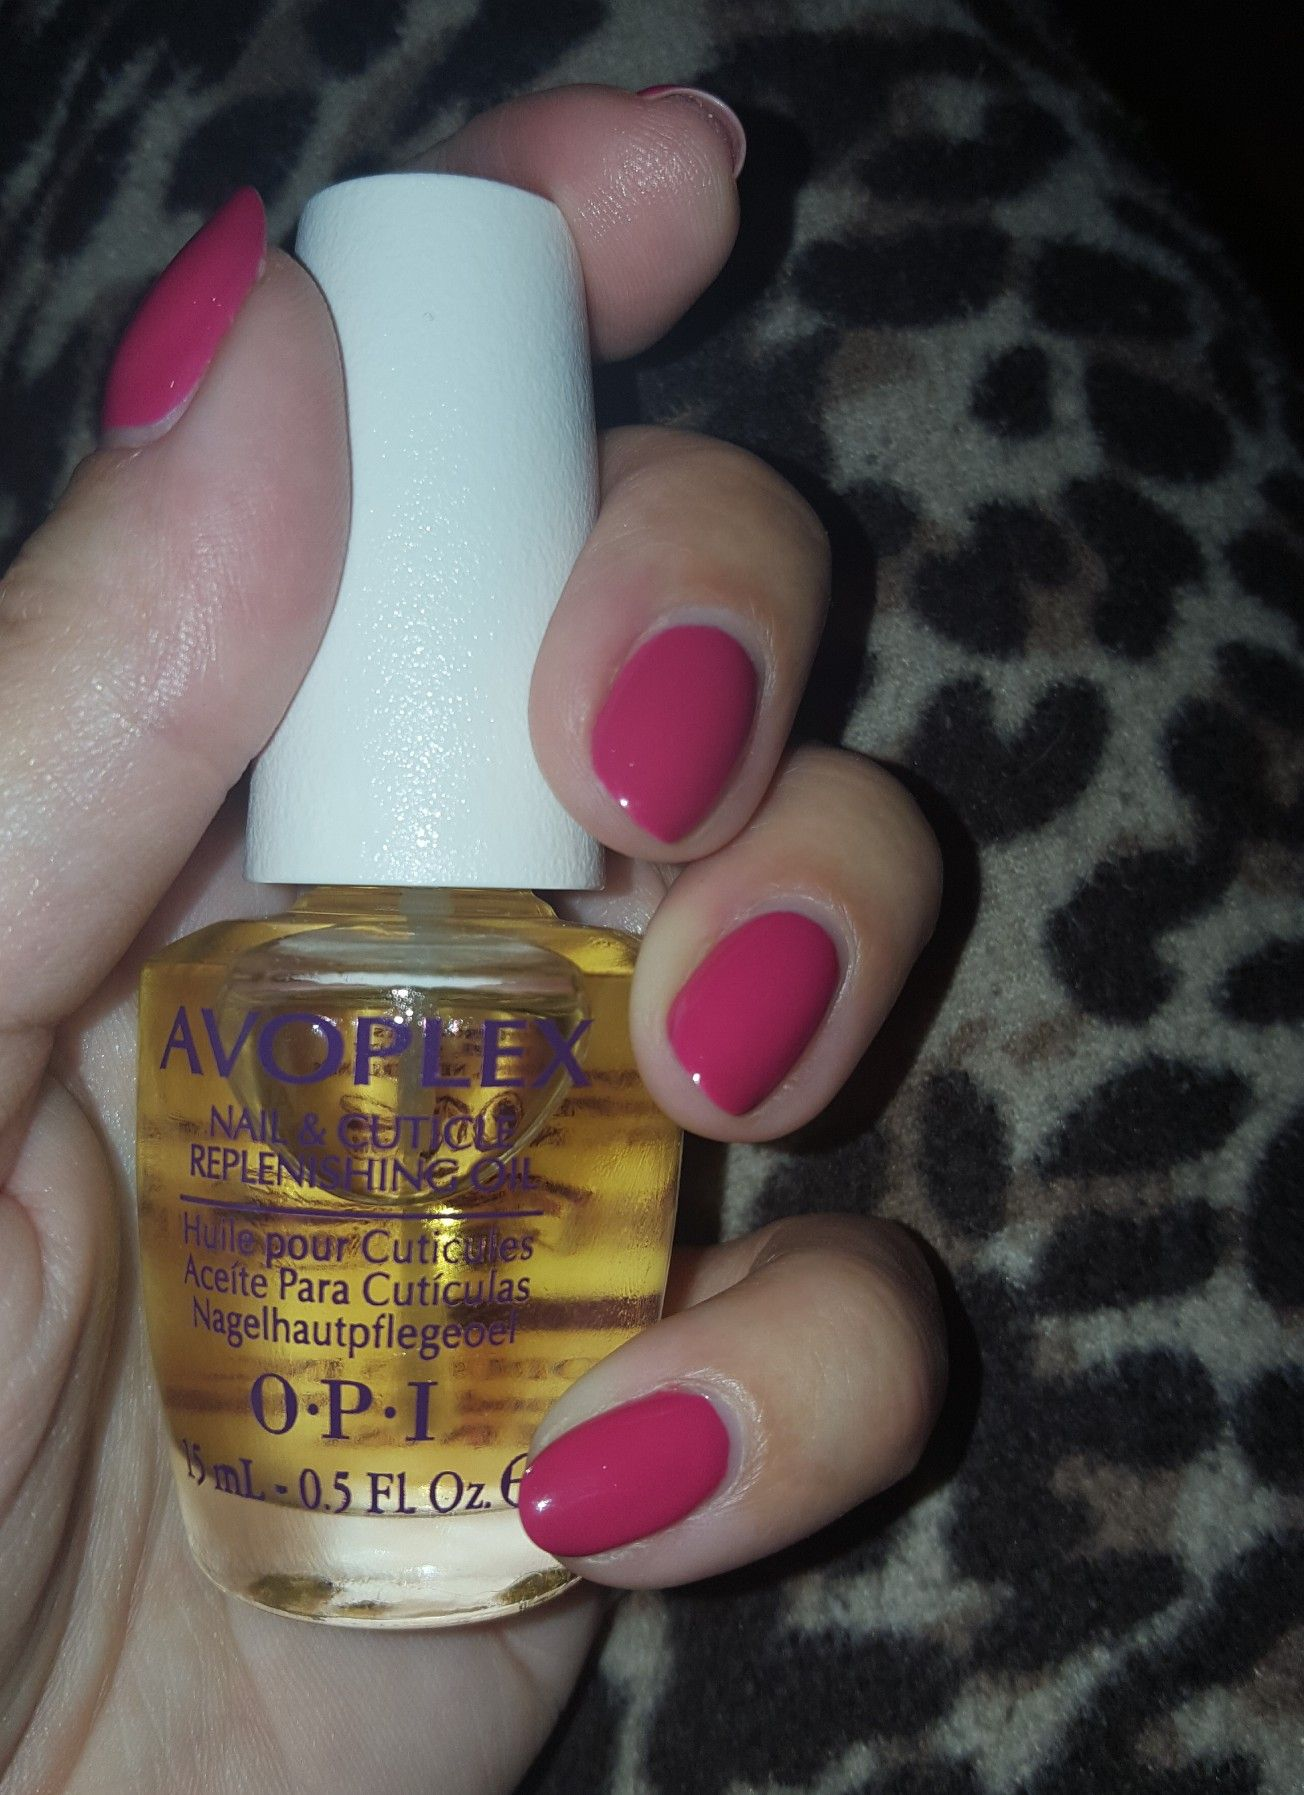 OPI AVOPLEX nail & cuticle oil. Use this every day, can\'t be without ...